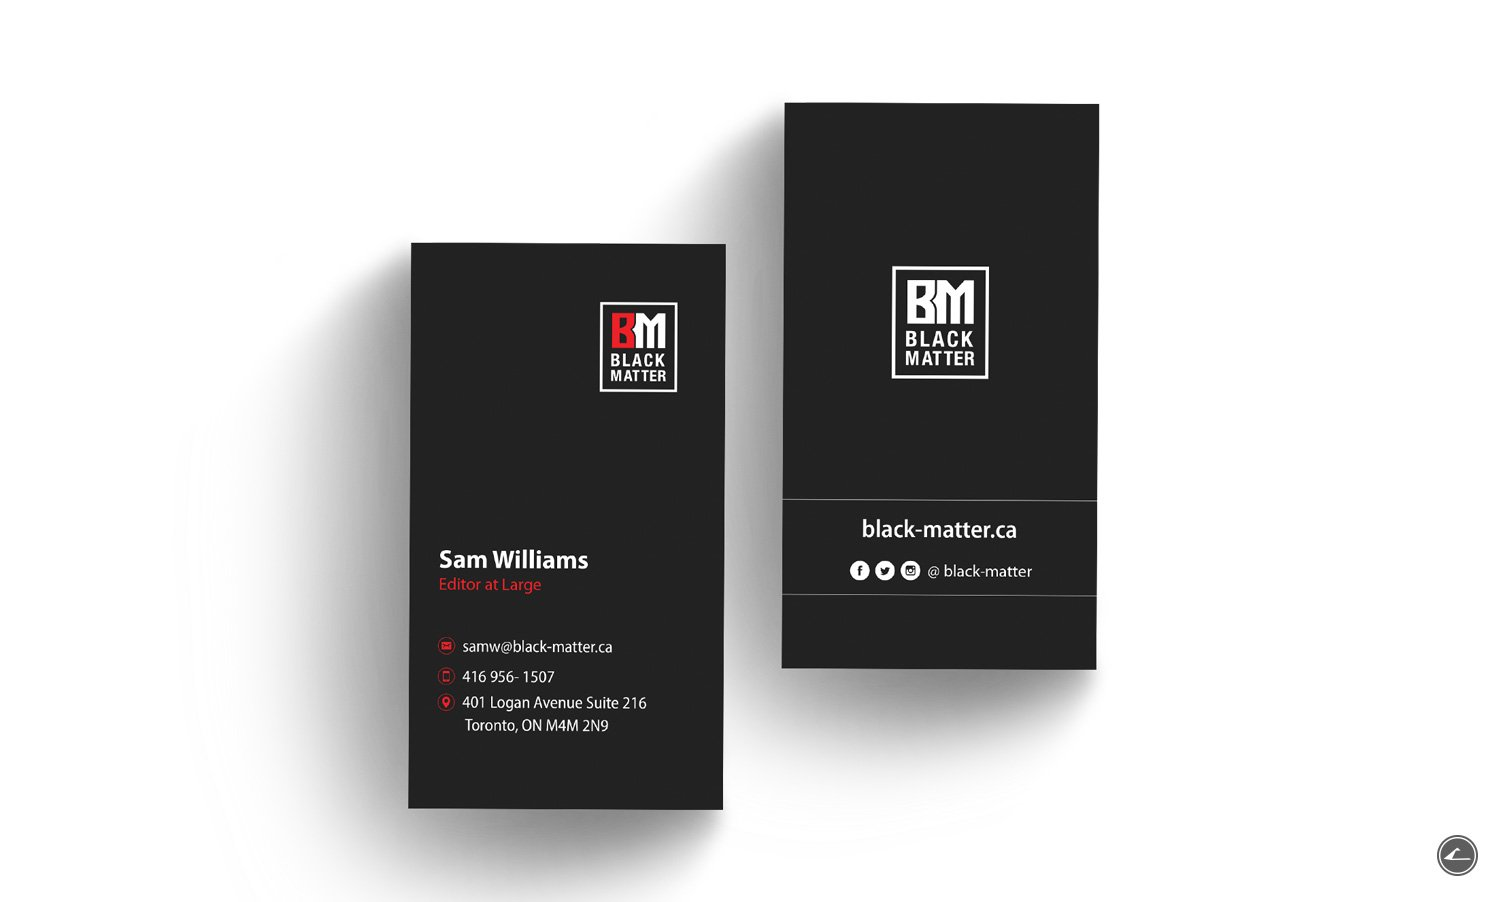 Black-matter_business-card2